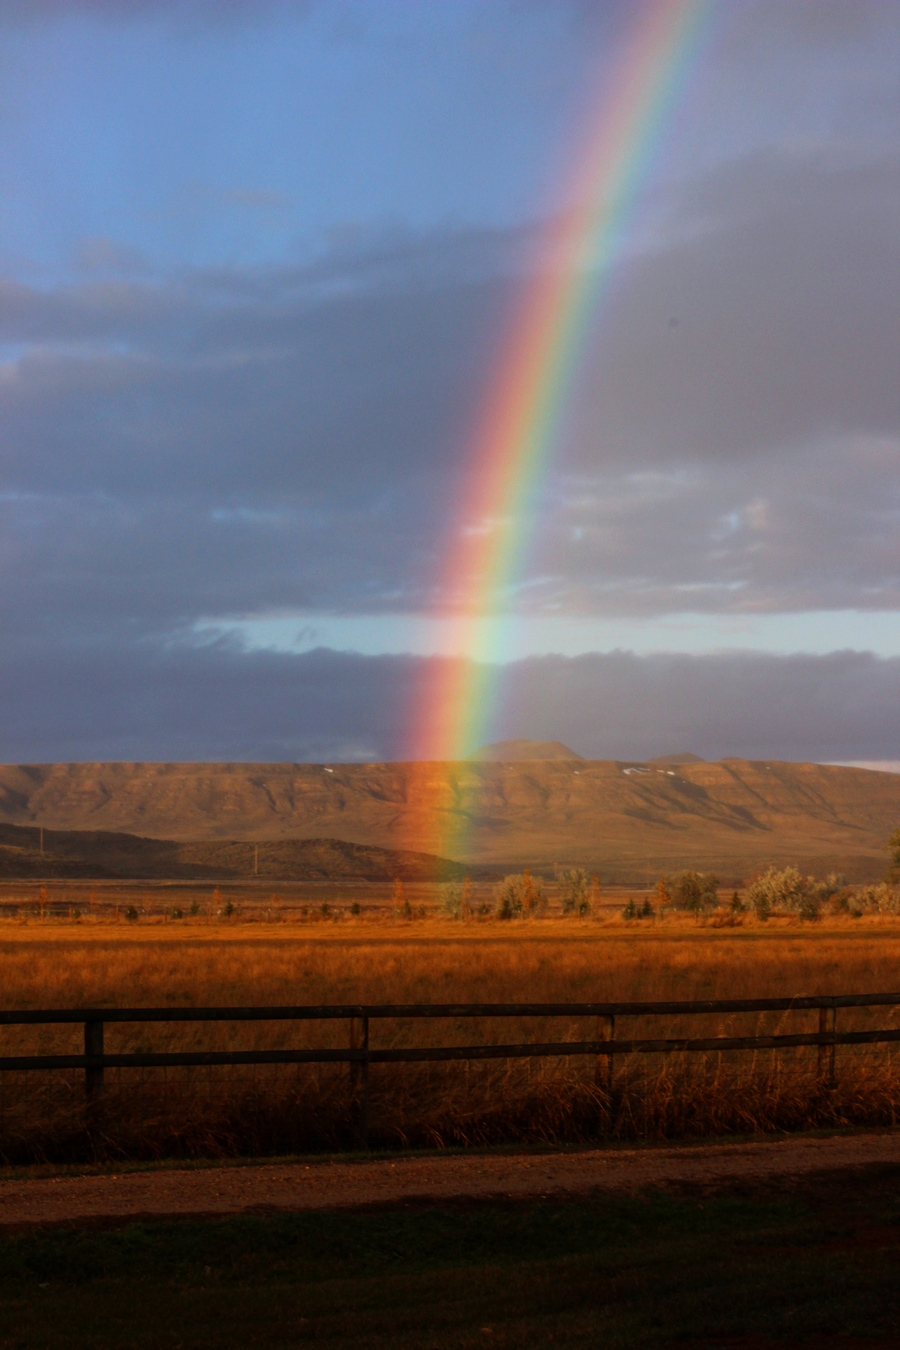 Rainbow, Ucross, Wyoming